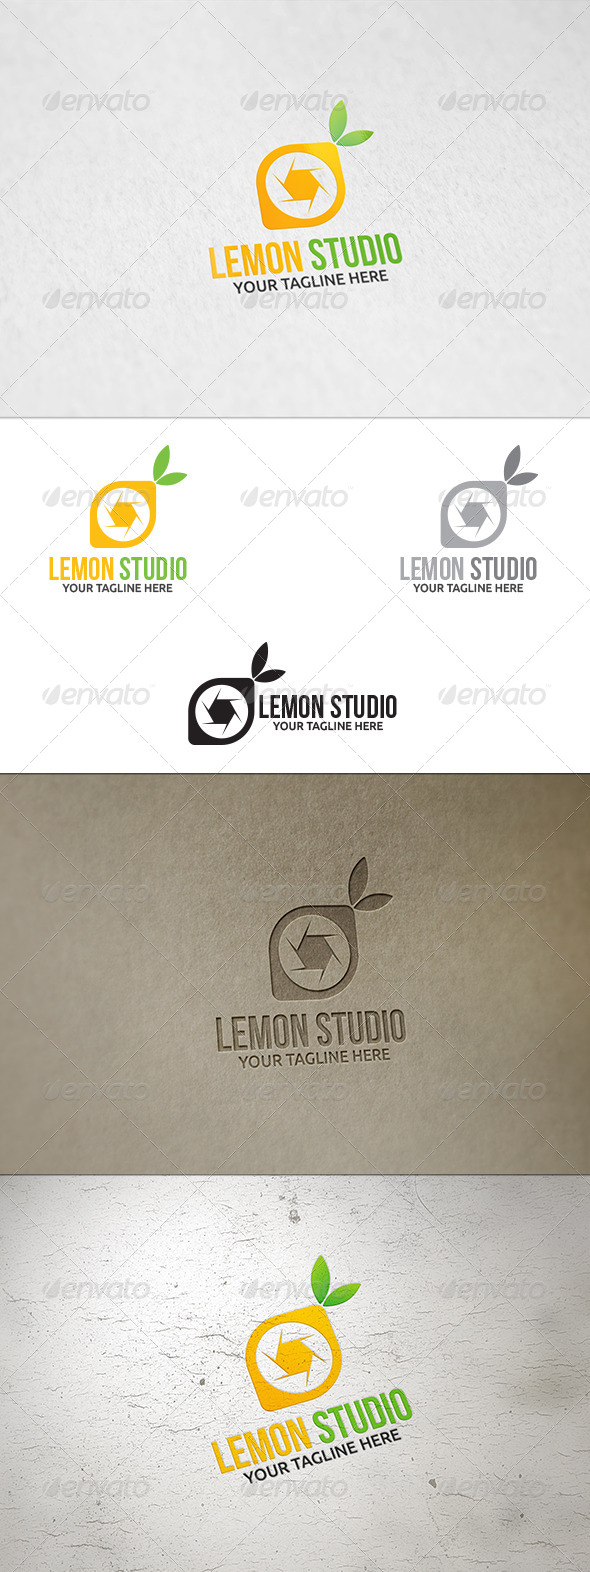 GraphicRiver Lemon Studio Logo Template 8718817